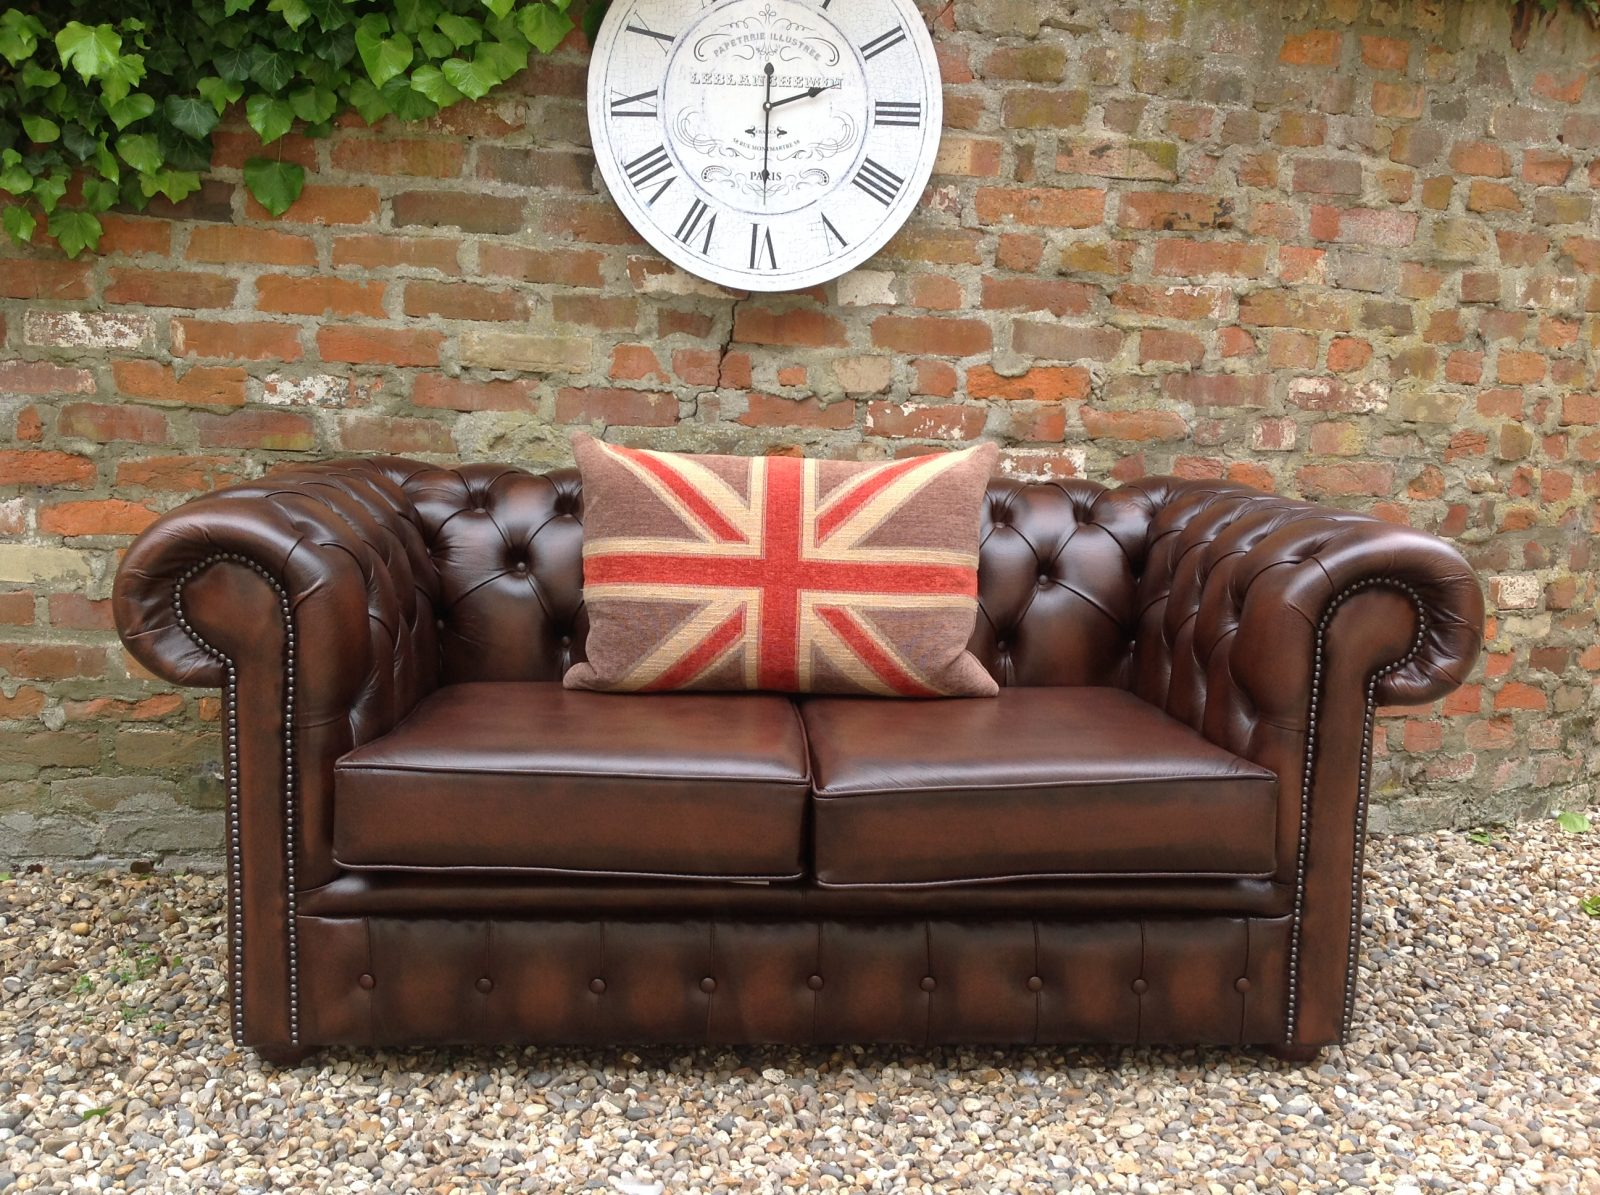 Rich Brown Chesterfield Sofa.